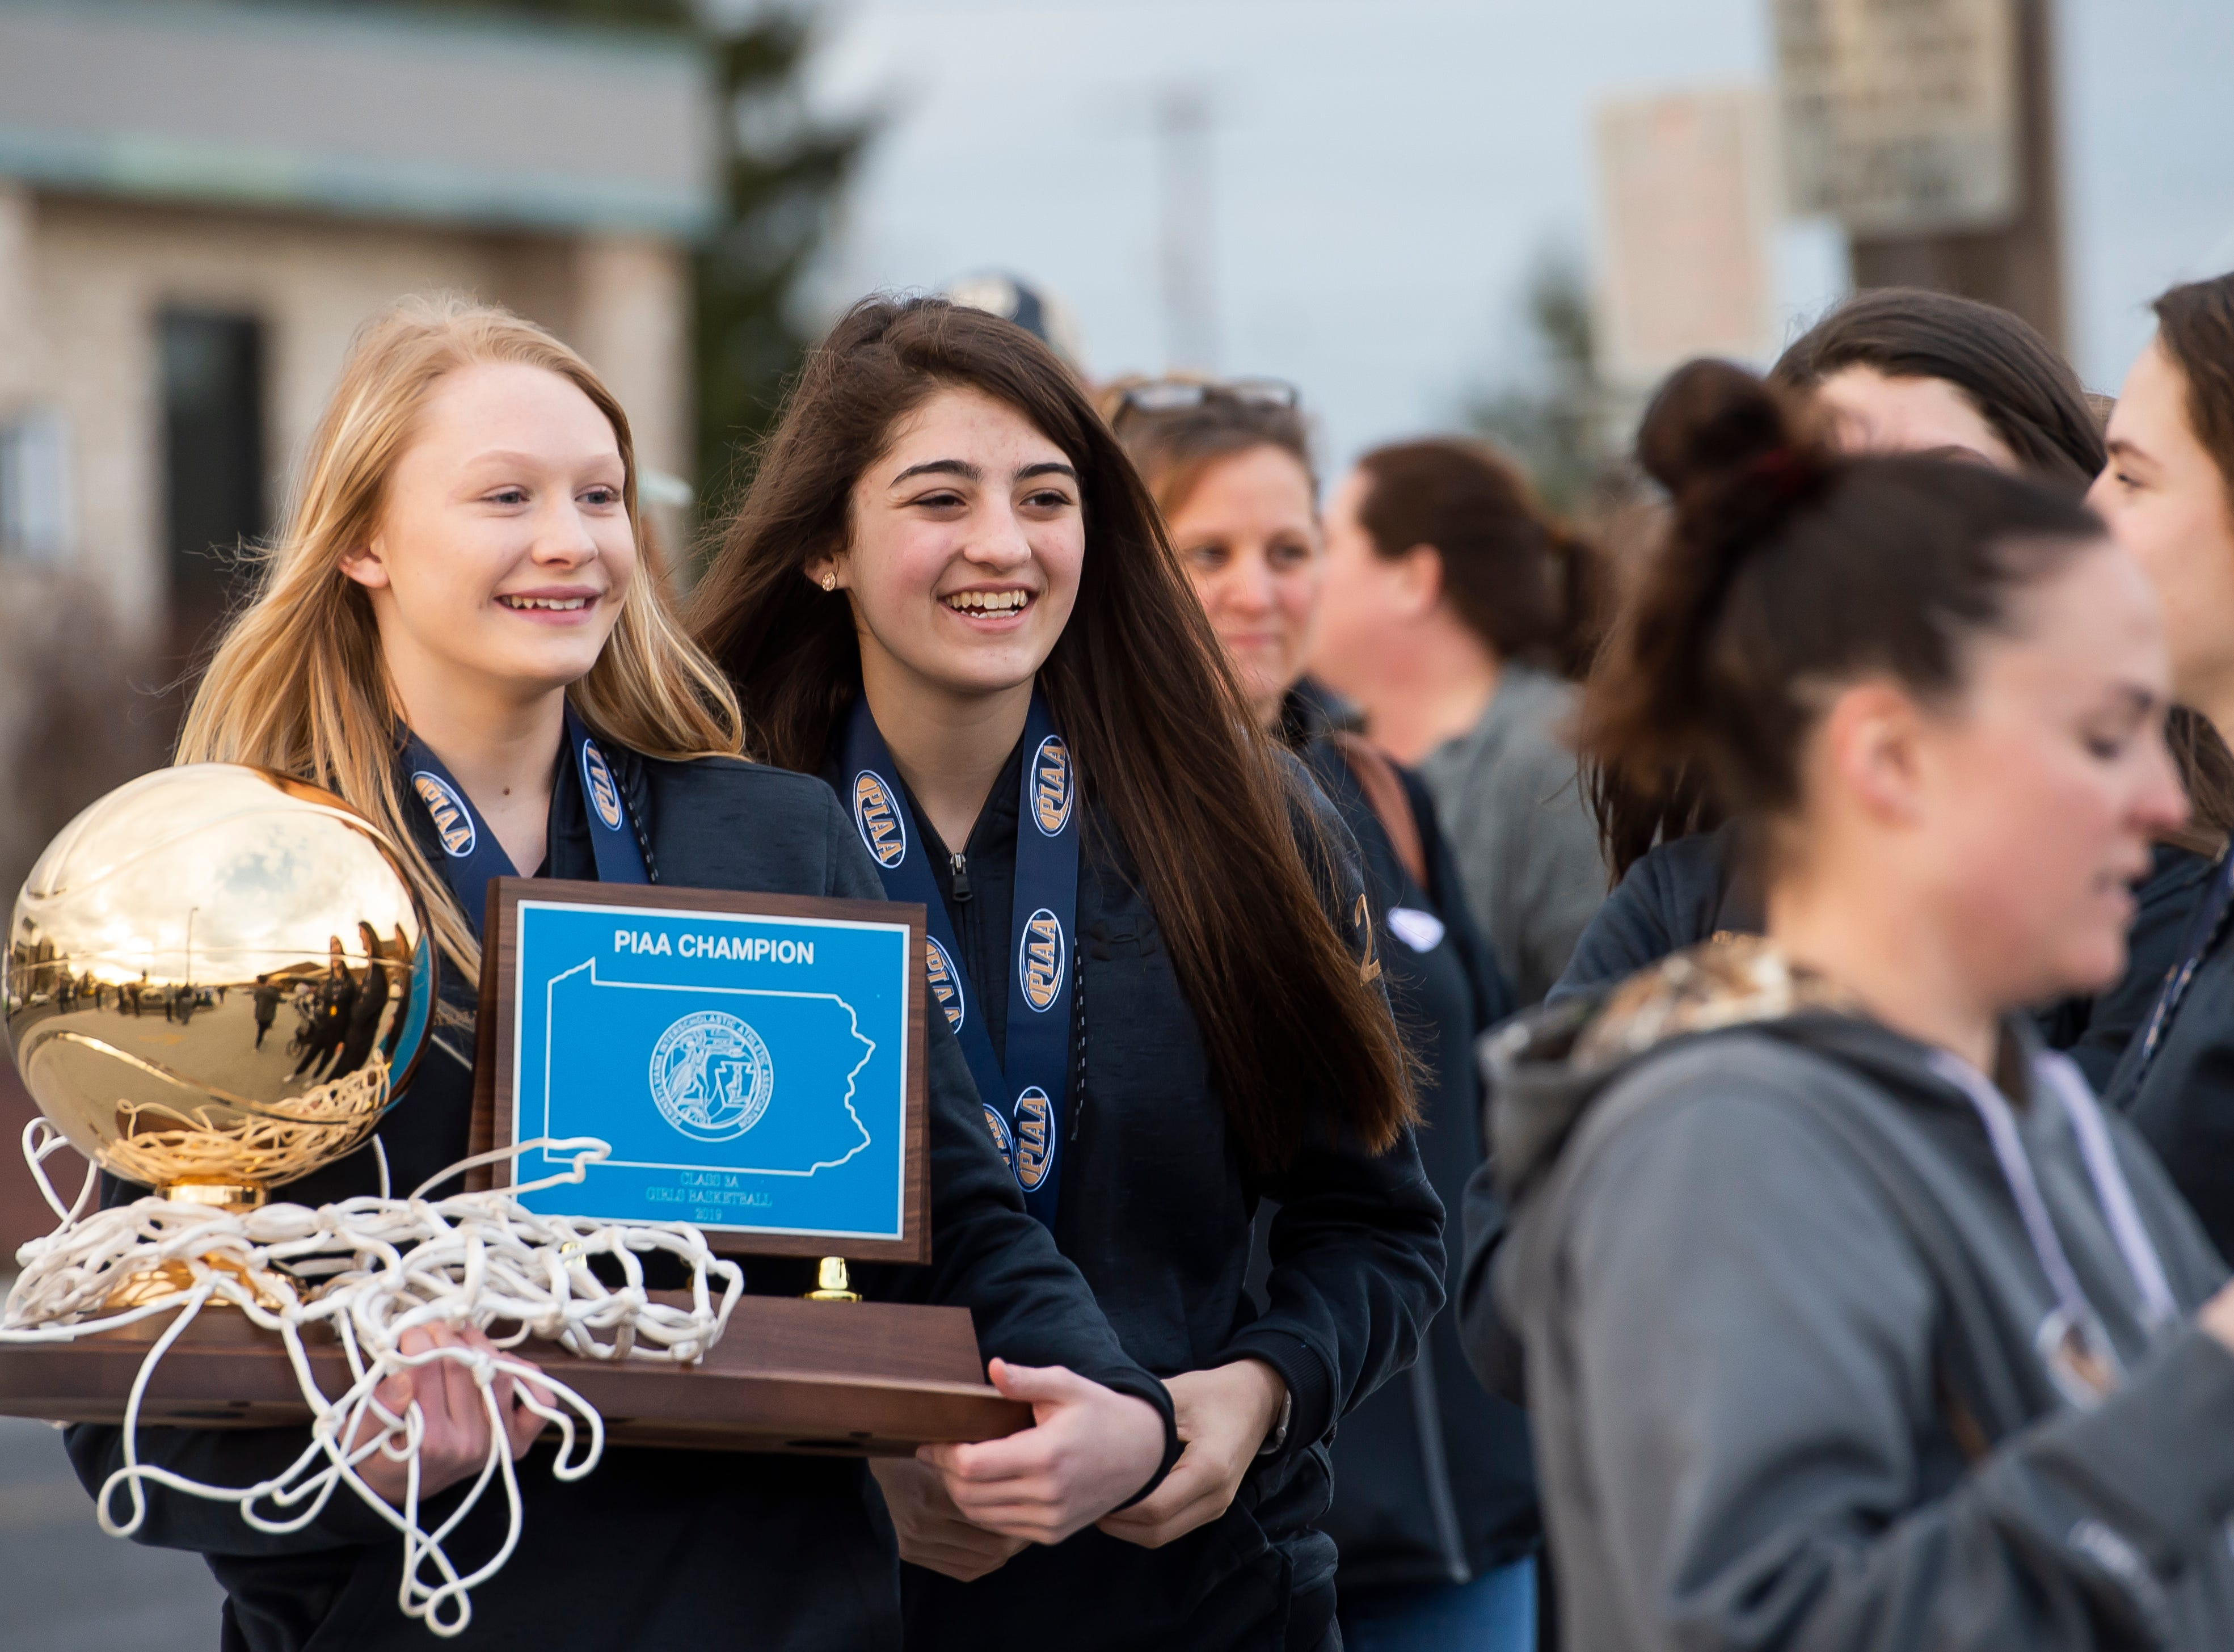 Delone Catholic's Brooke Lawyer (left) and Maddie Sieg smile following a parade in McSherrystown celebrating the Squirettes' PIAA championship on Thursday, March 28, 2019.